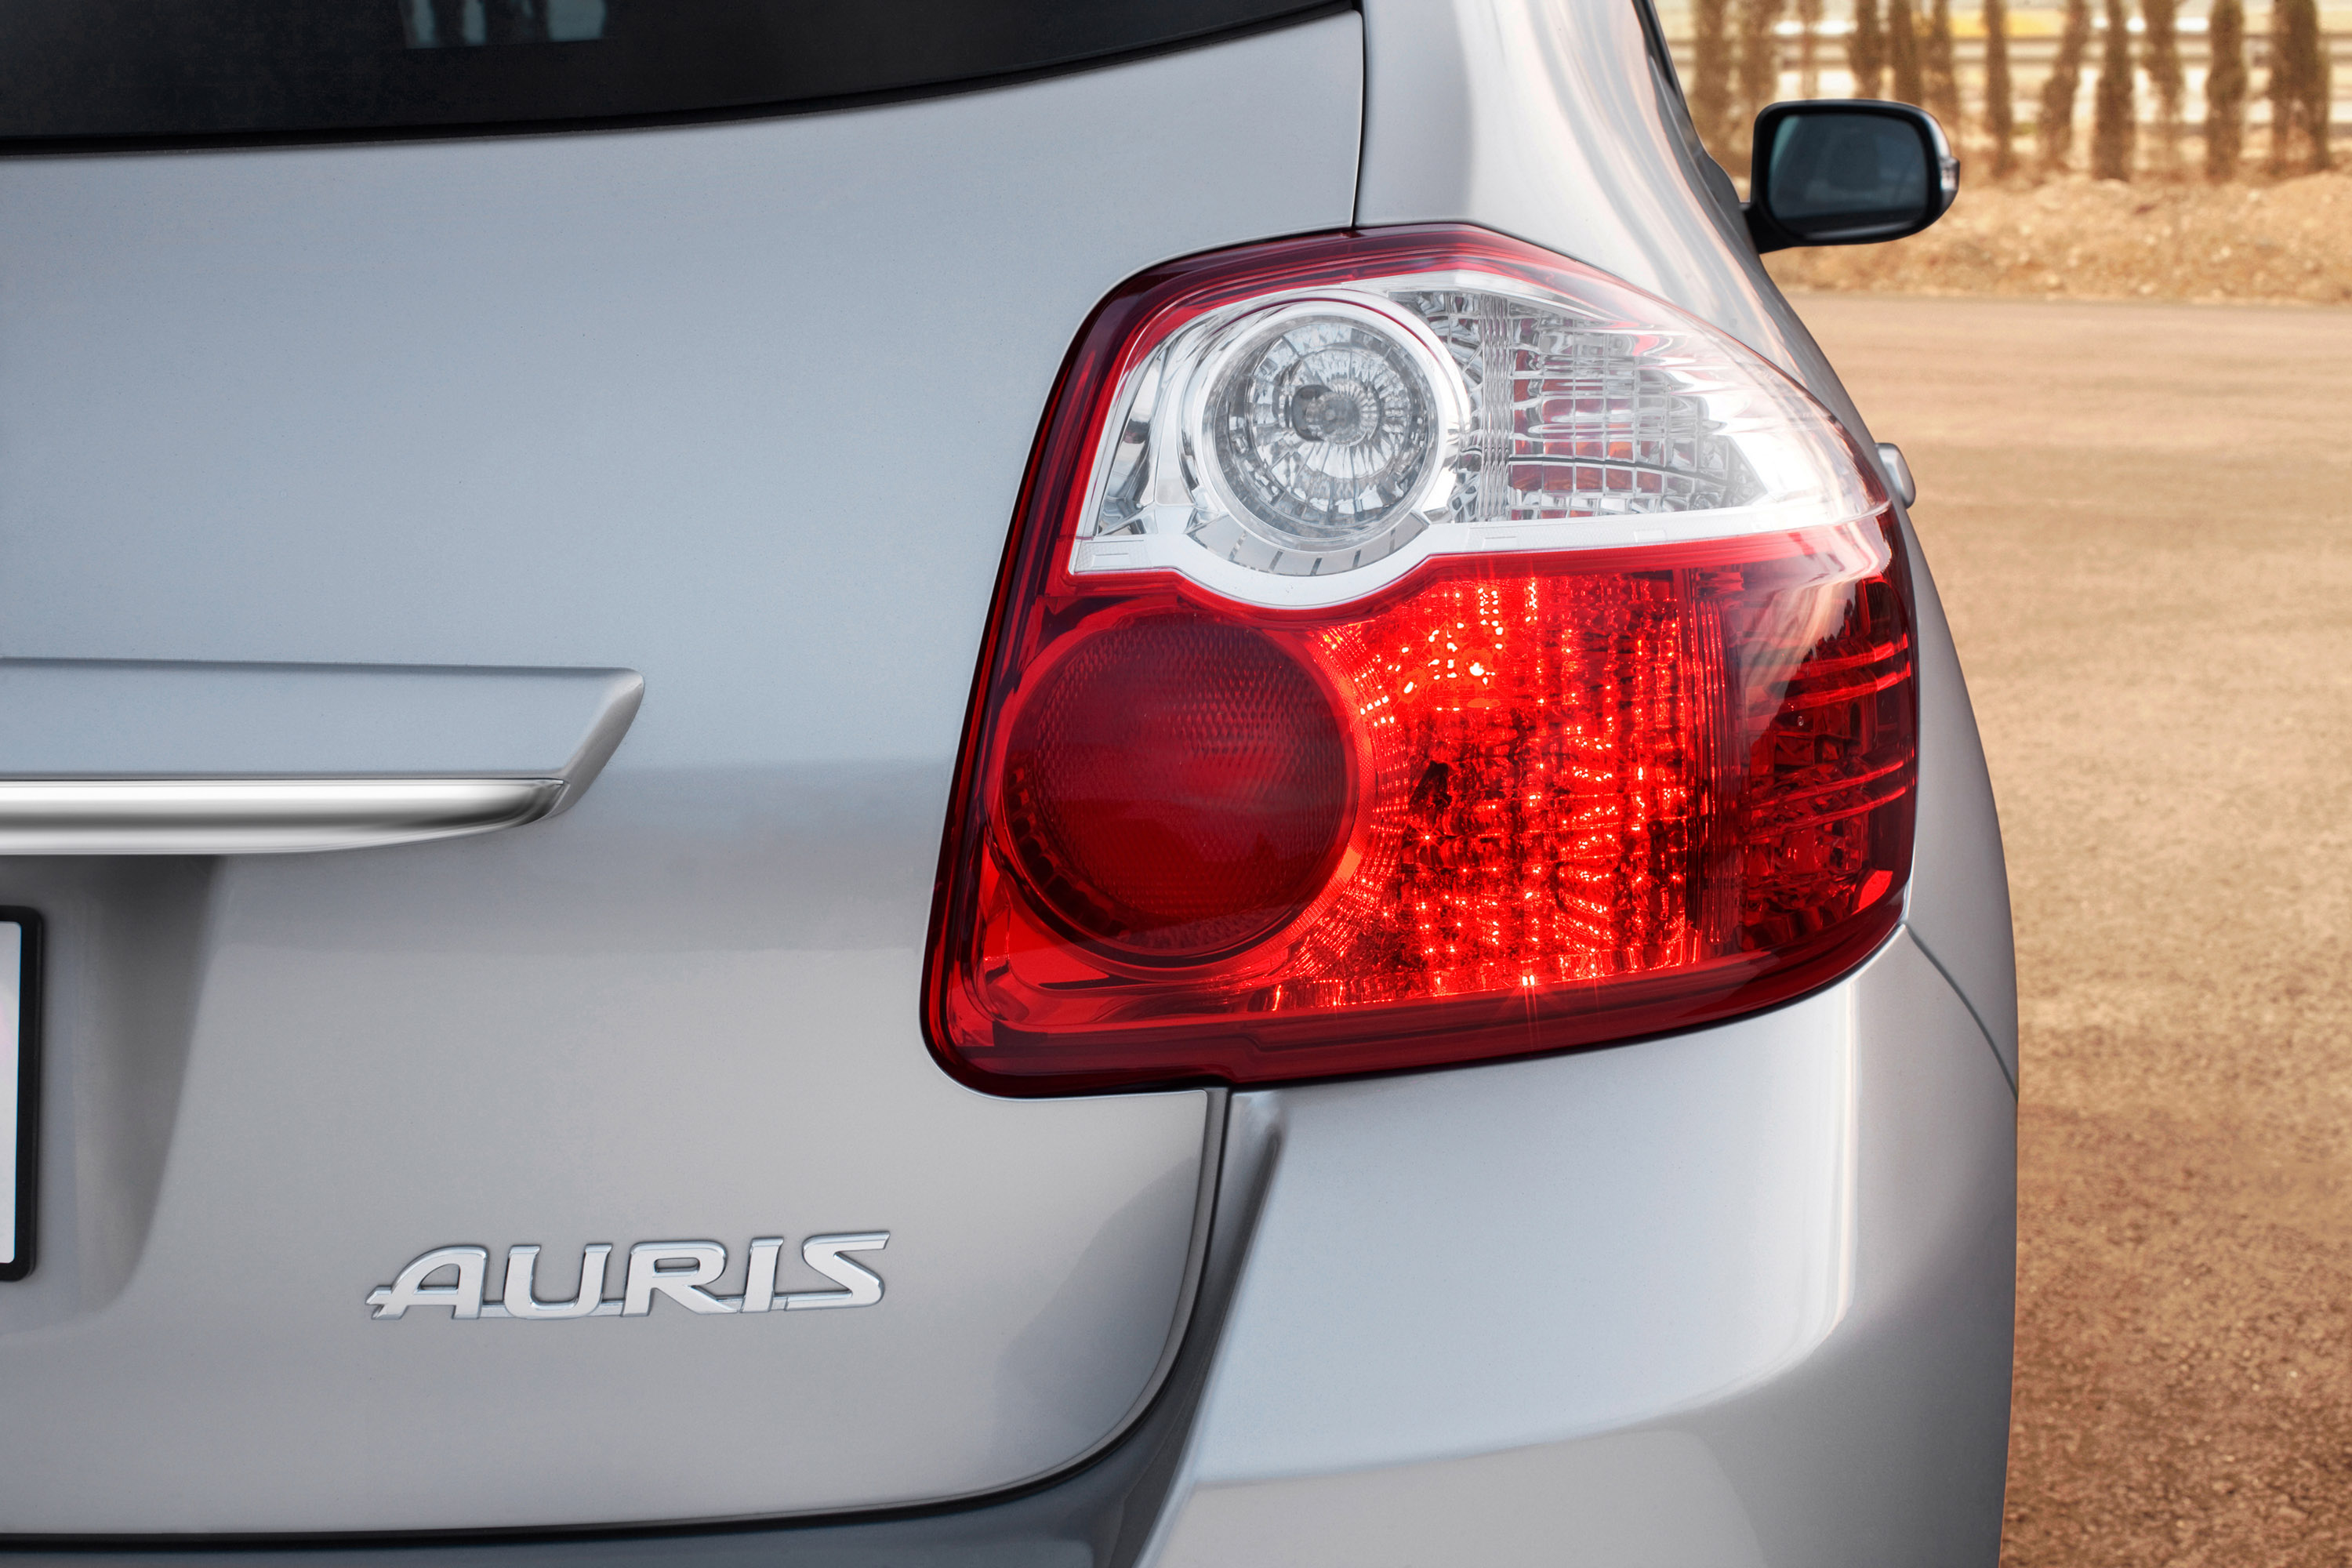 Toyota Auris photo #49